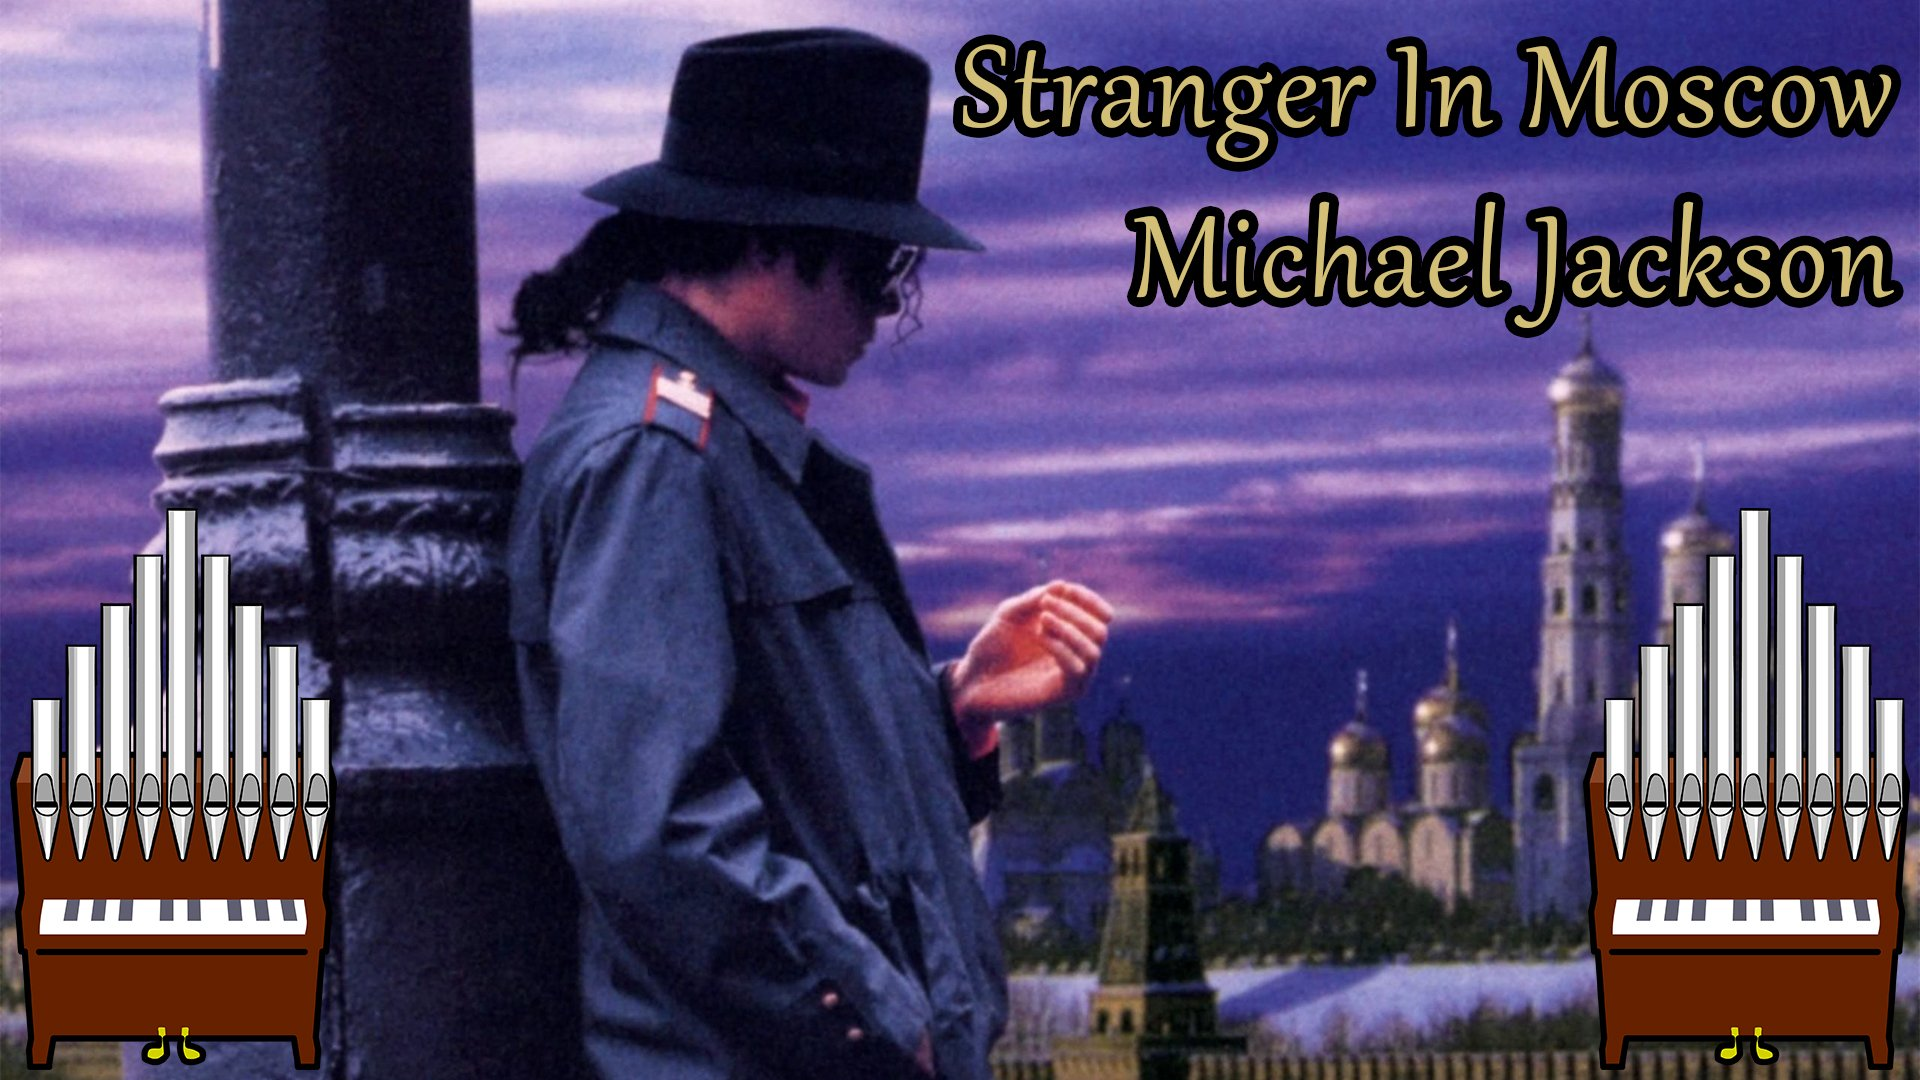 [Patreon Request] Stranger In Moscow (Michael Jackson) Organ Cover